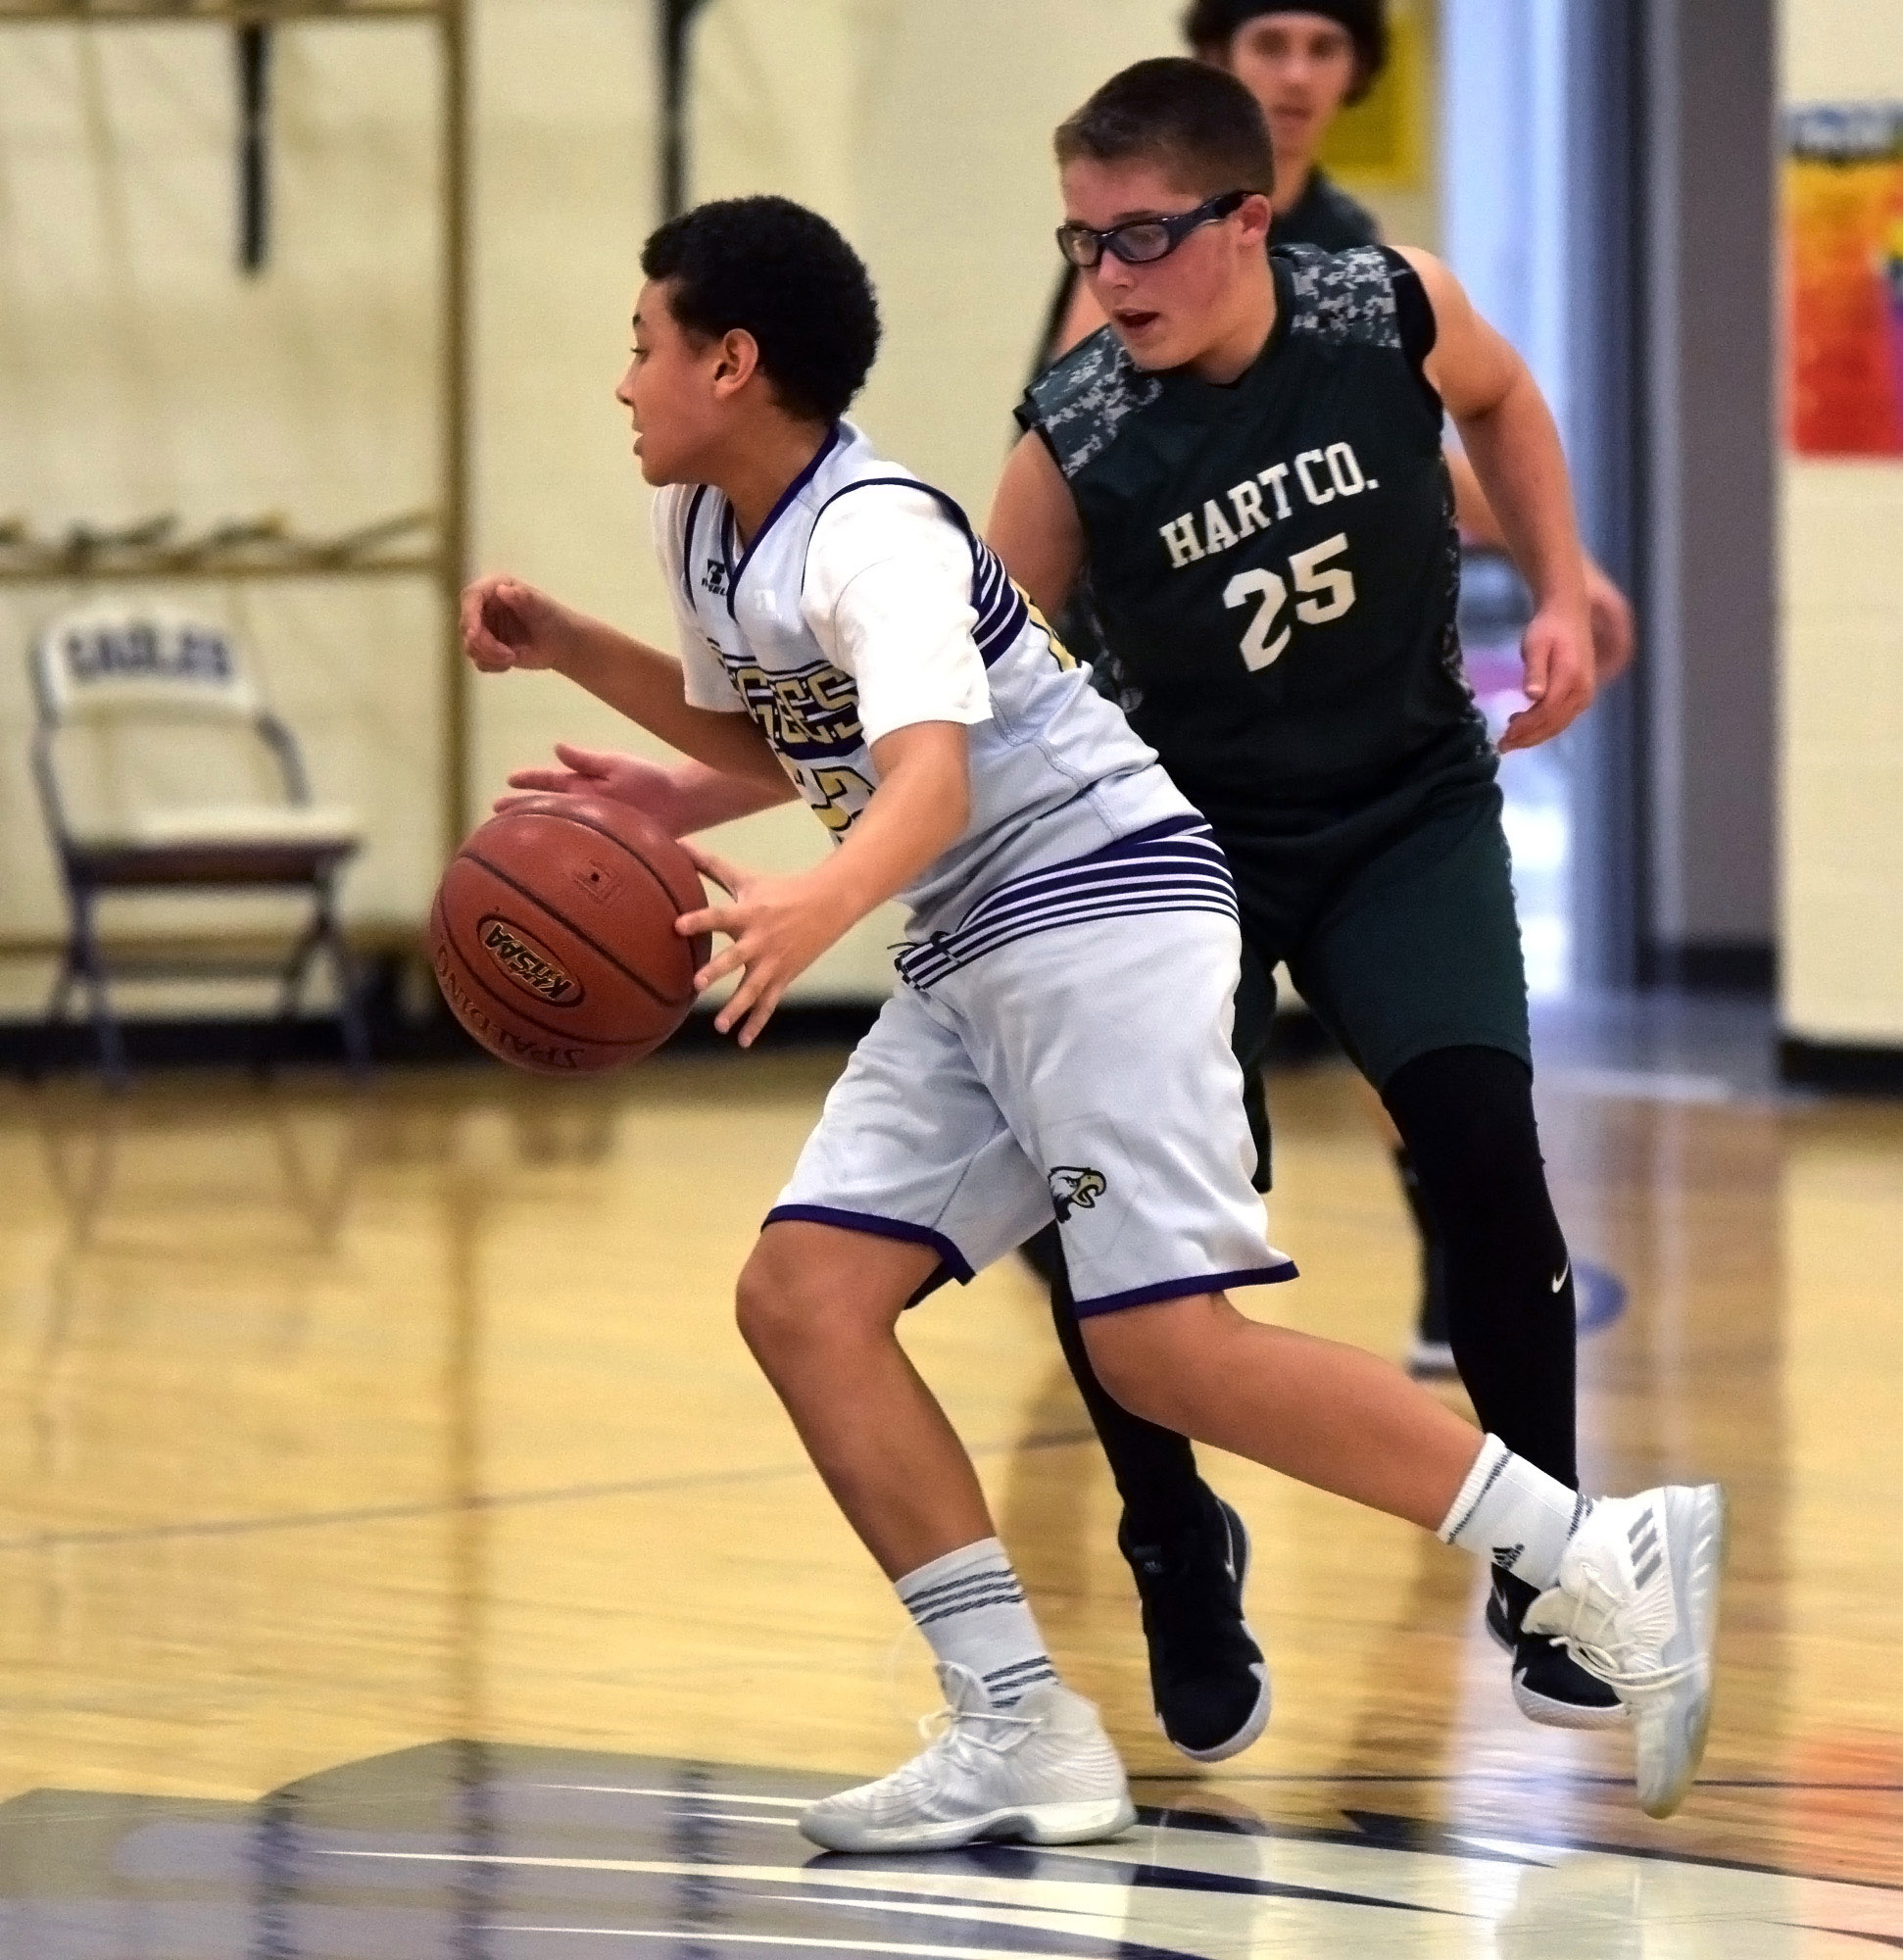 CMS eighth-grader Brice Spaw dribbles around a Hart County defender.